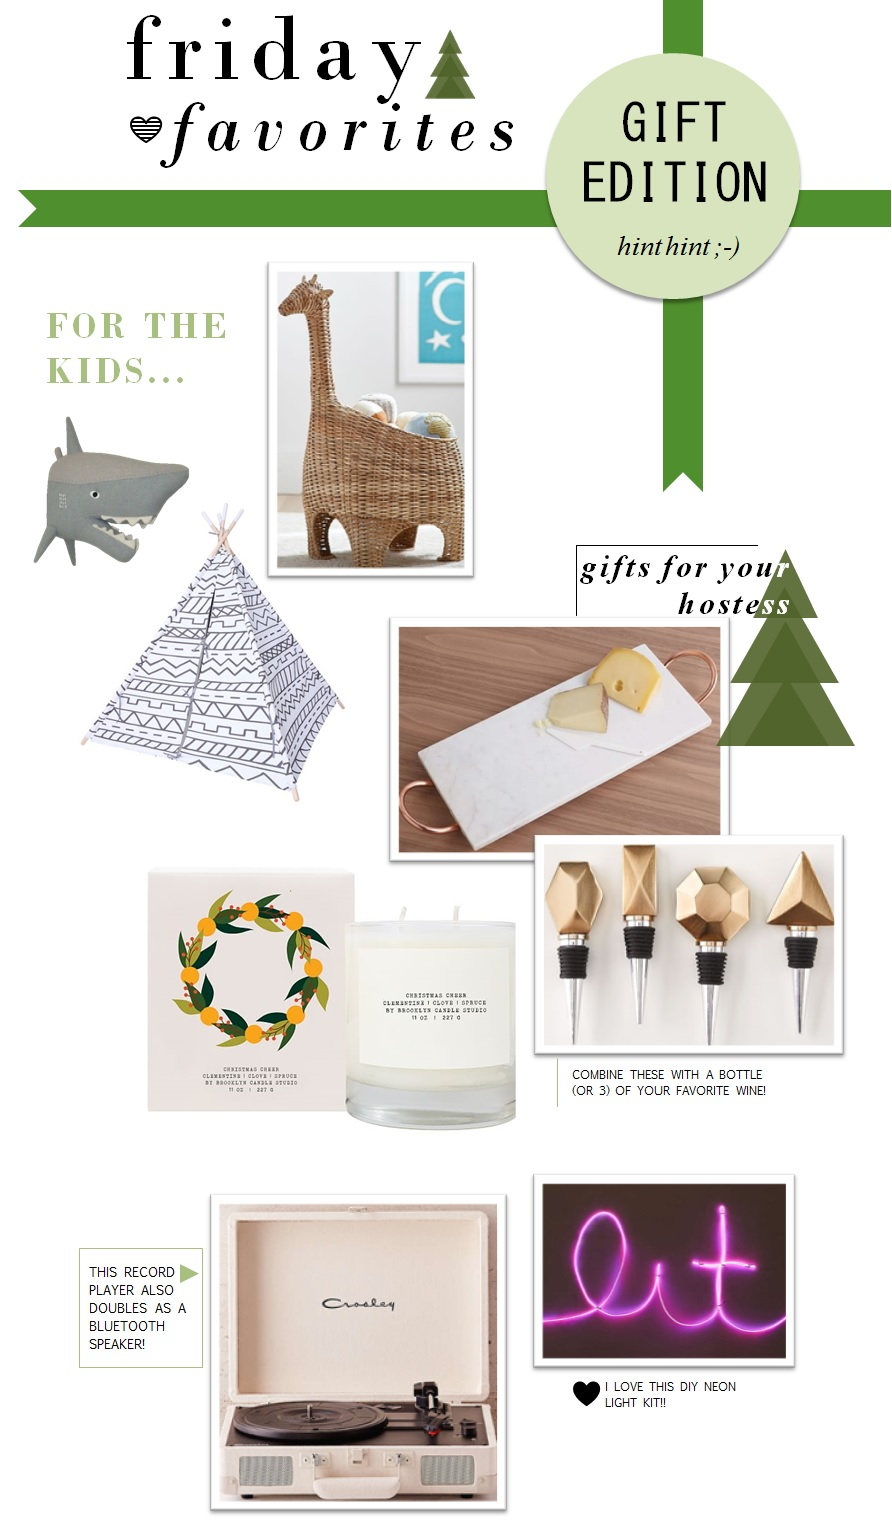 Shark Head  |  Play Tent  |  Giraffe Basket  |  Marble and Copper Serving Tray  |  Christmas Candle  |  Bottle Stoppers  |  Record Player  |  DIY Neon Sign Kit